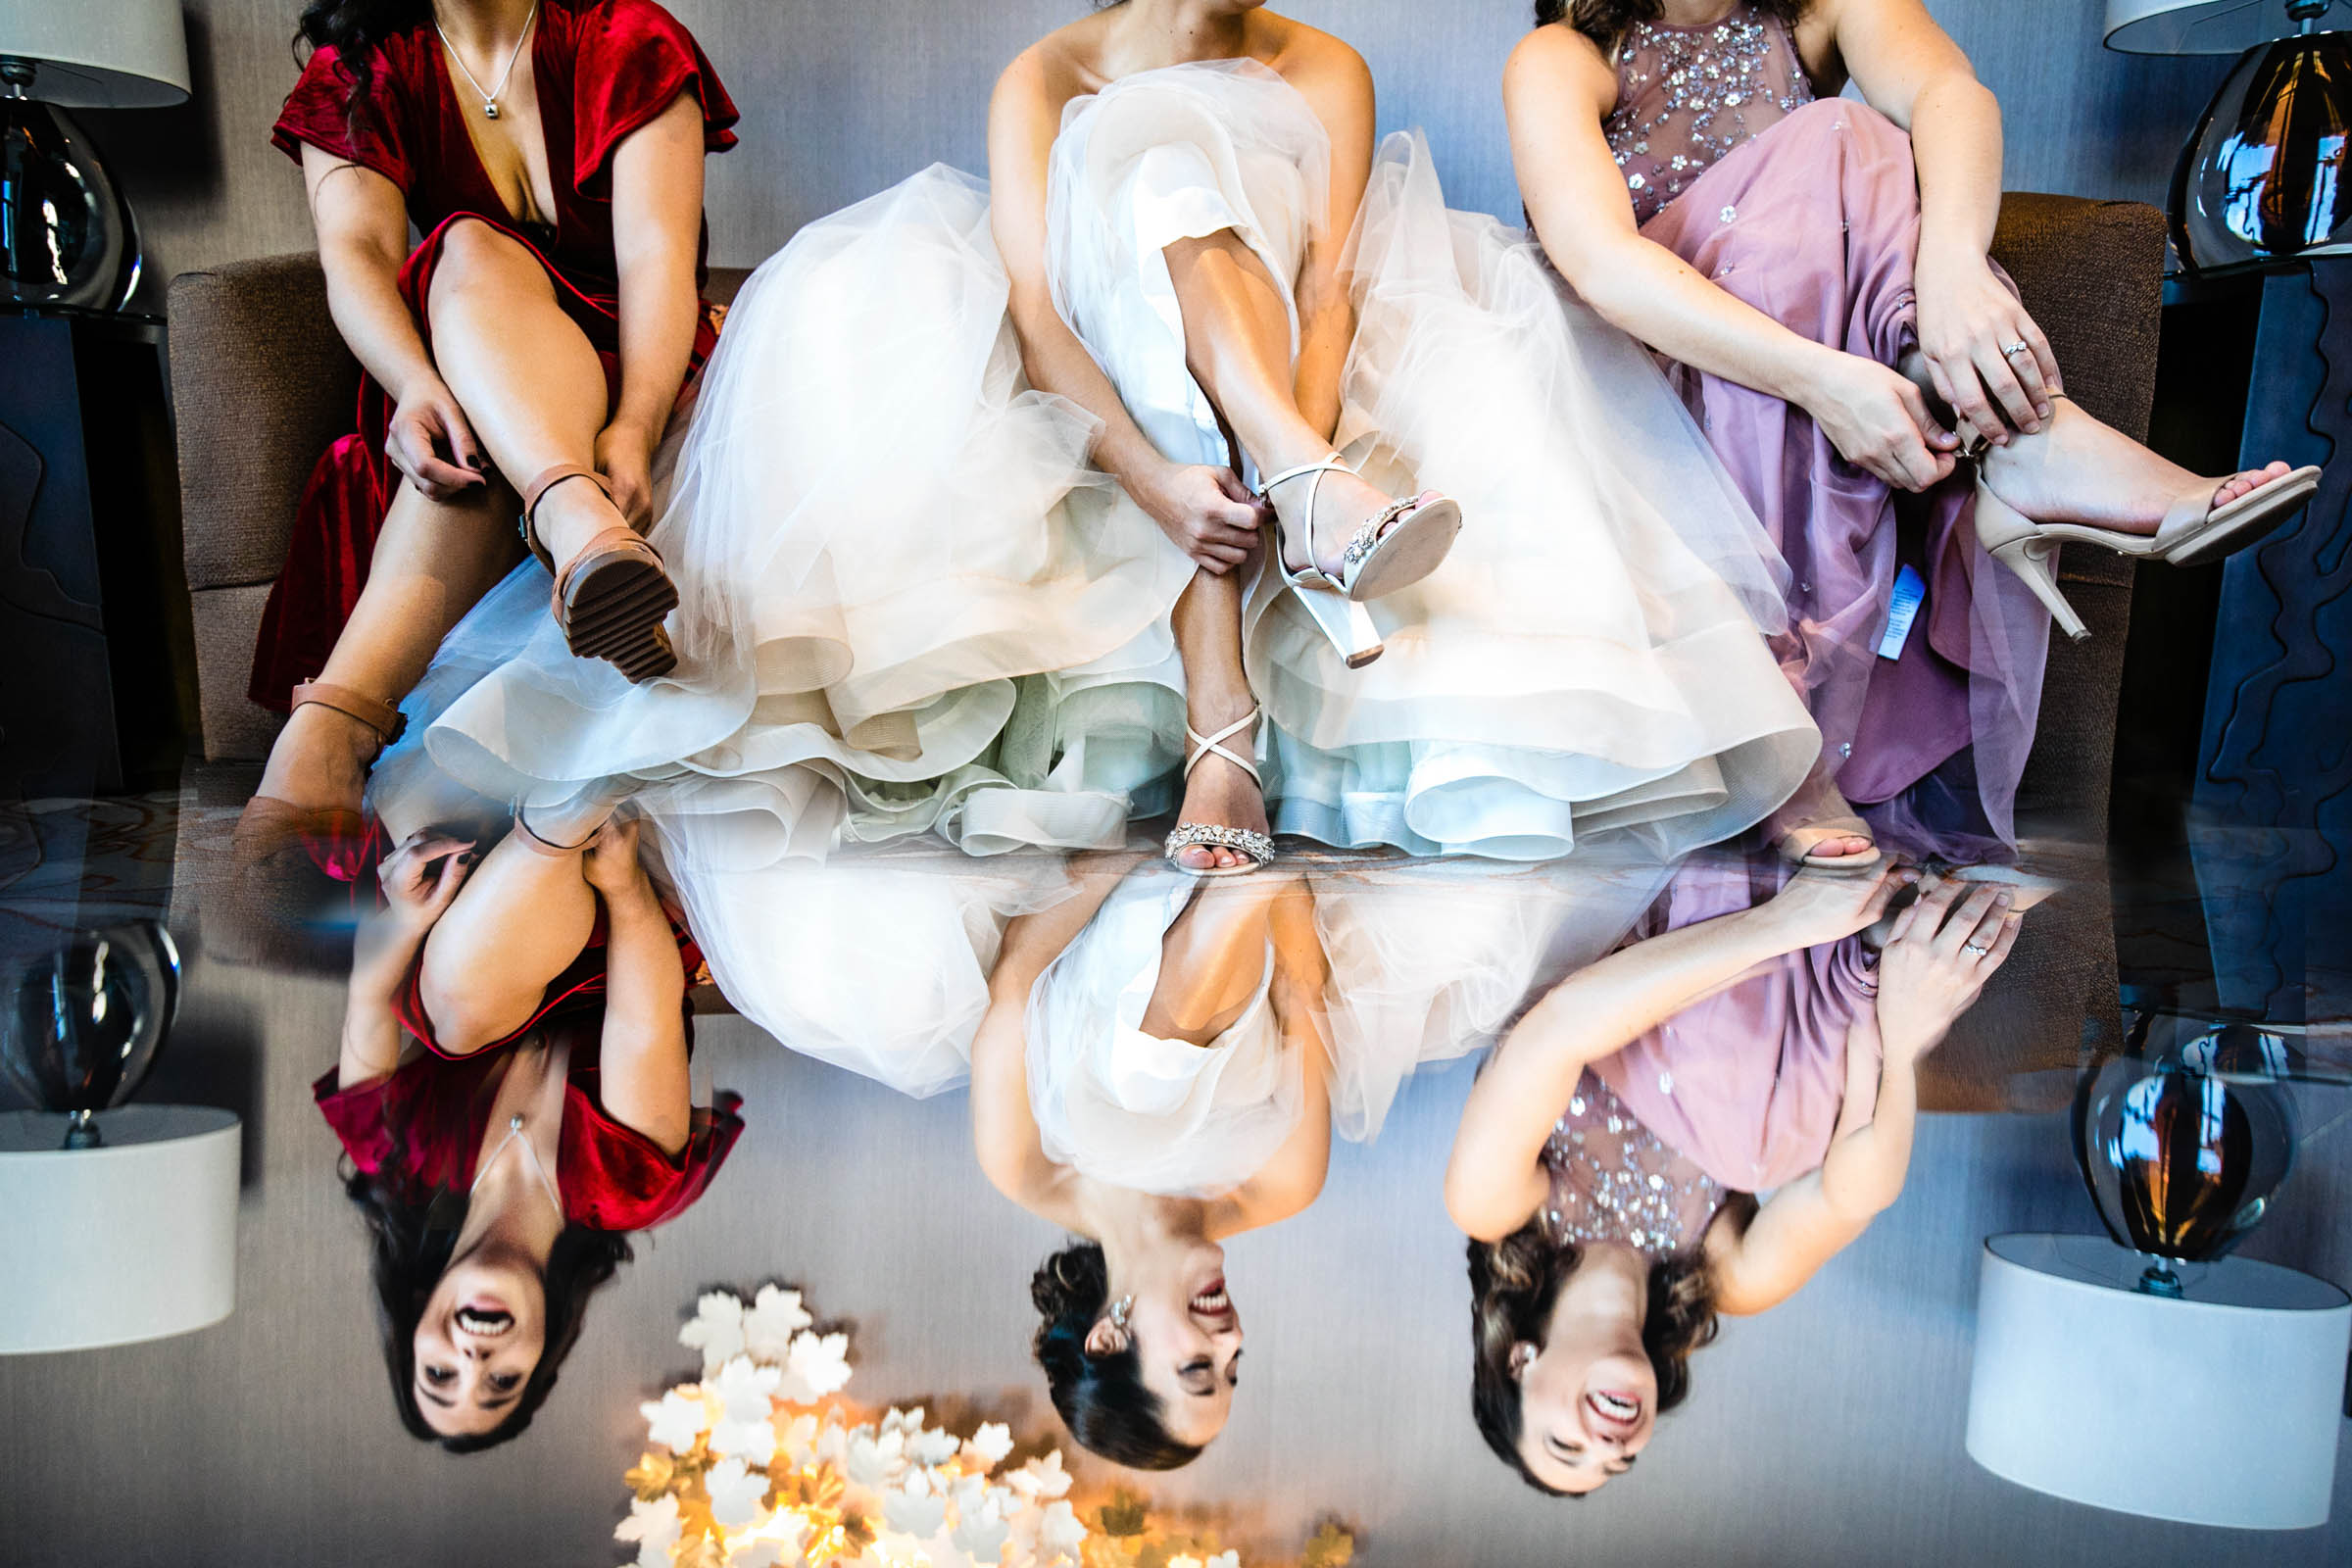 50 Best Wedding Photo Concepts of the Decade - photo by Marissa Joy Photography